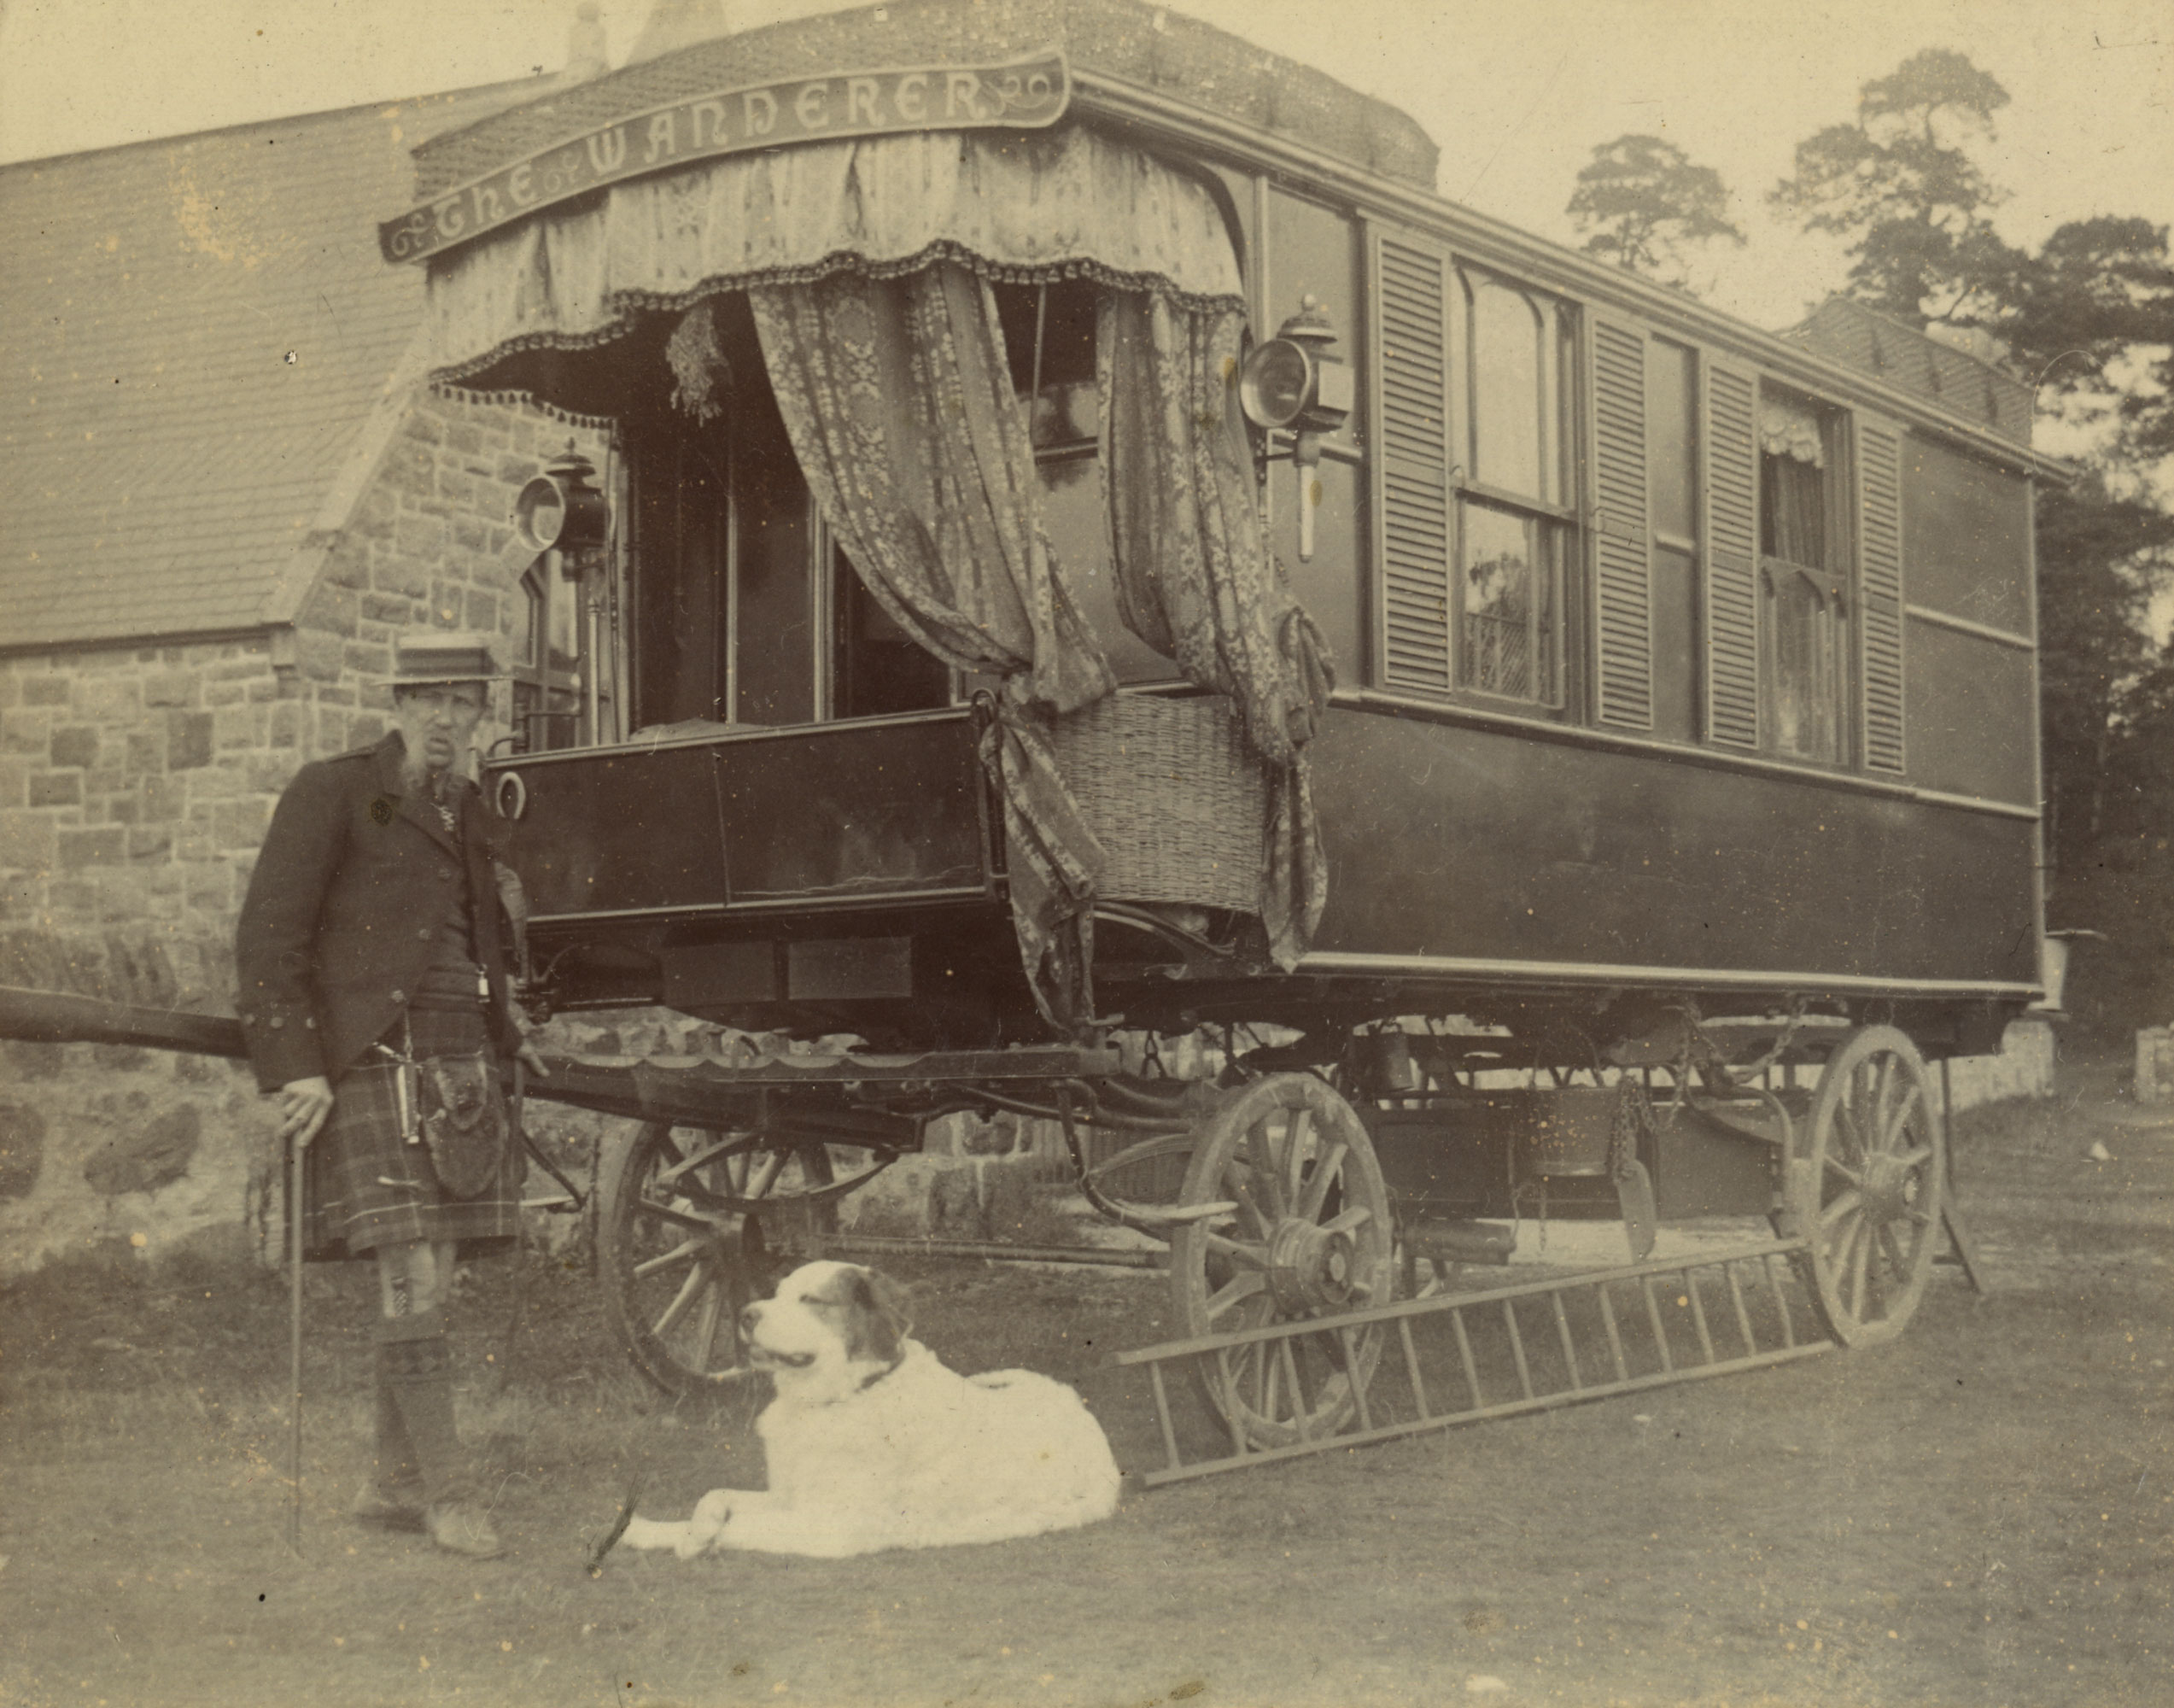 Gentleman and a dog standing by a caravan